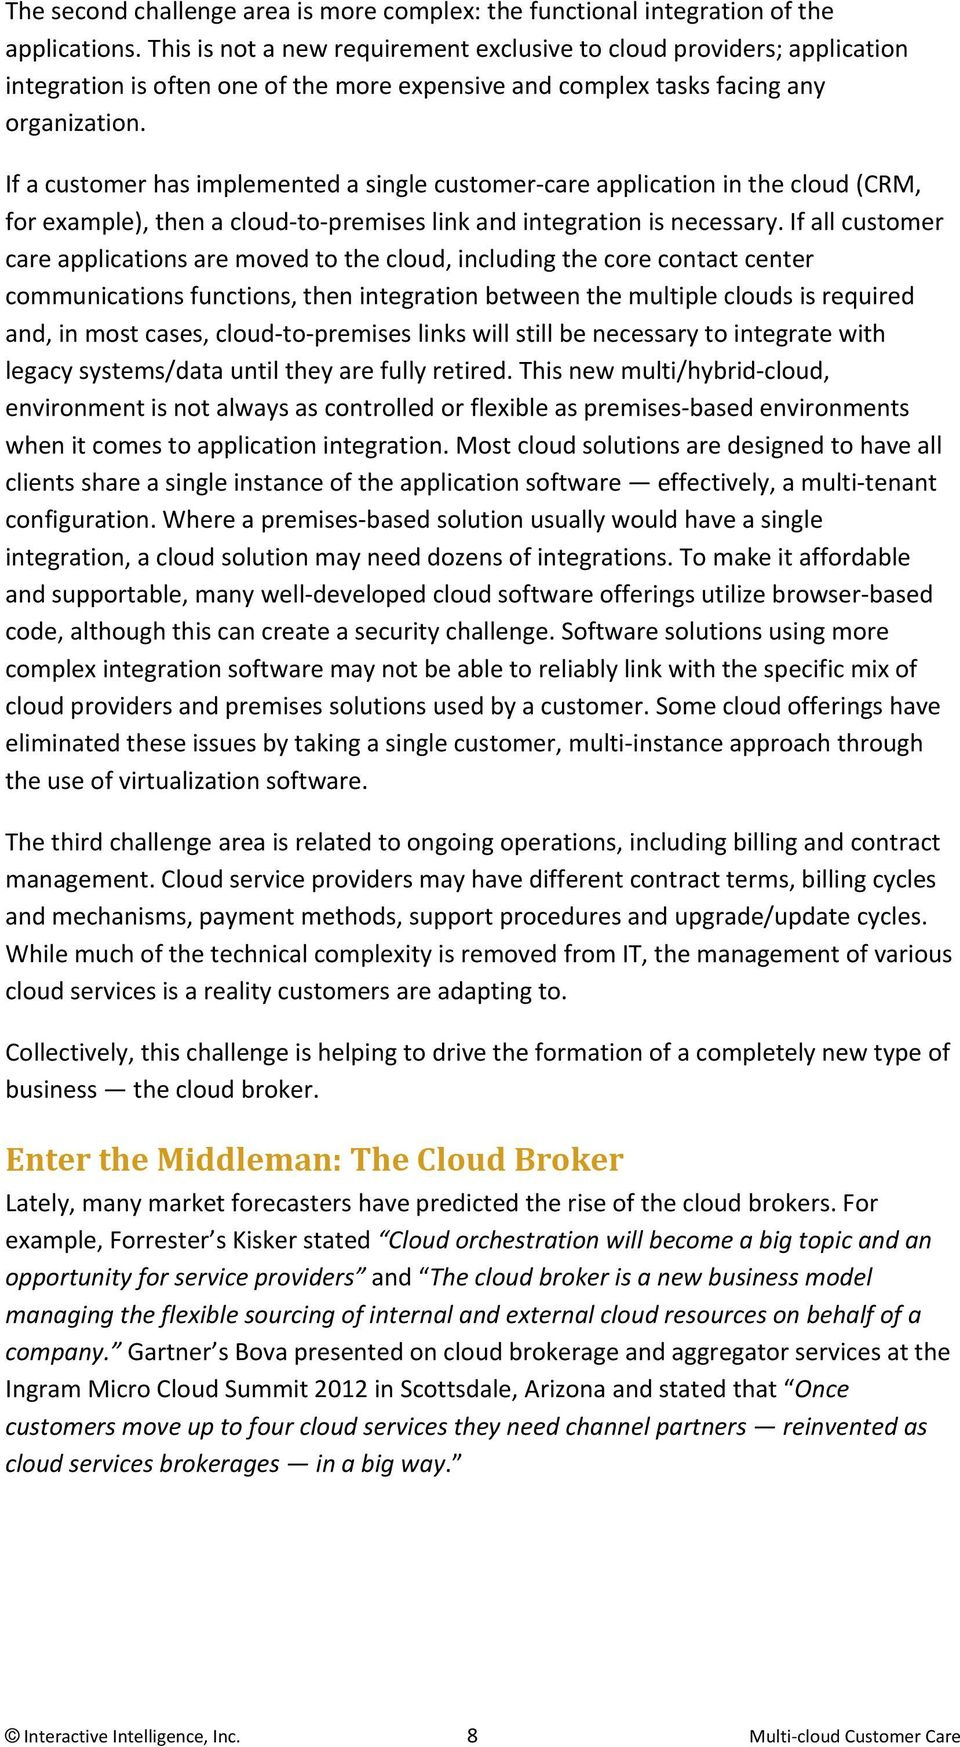 If a customer has implemented a single customer care application in the cloud (CRM, for example), then a cloud to premises link and integration is necessary.